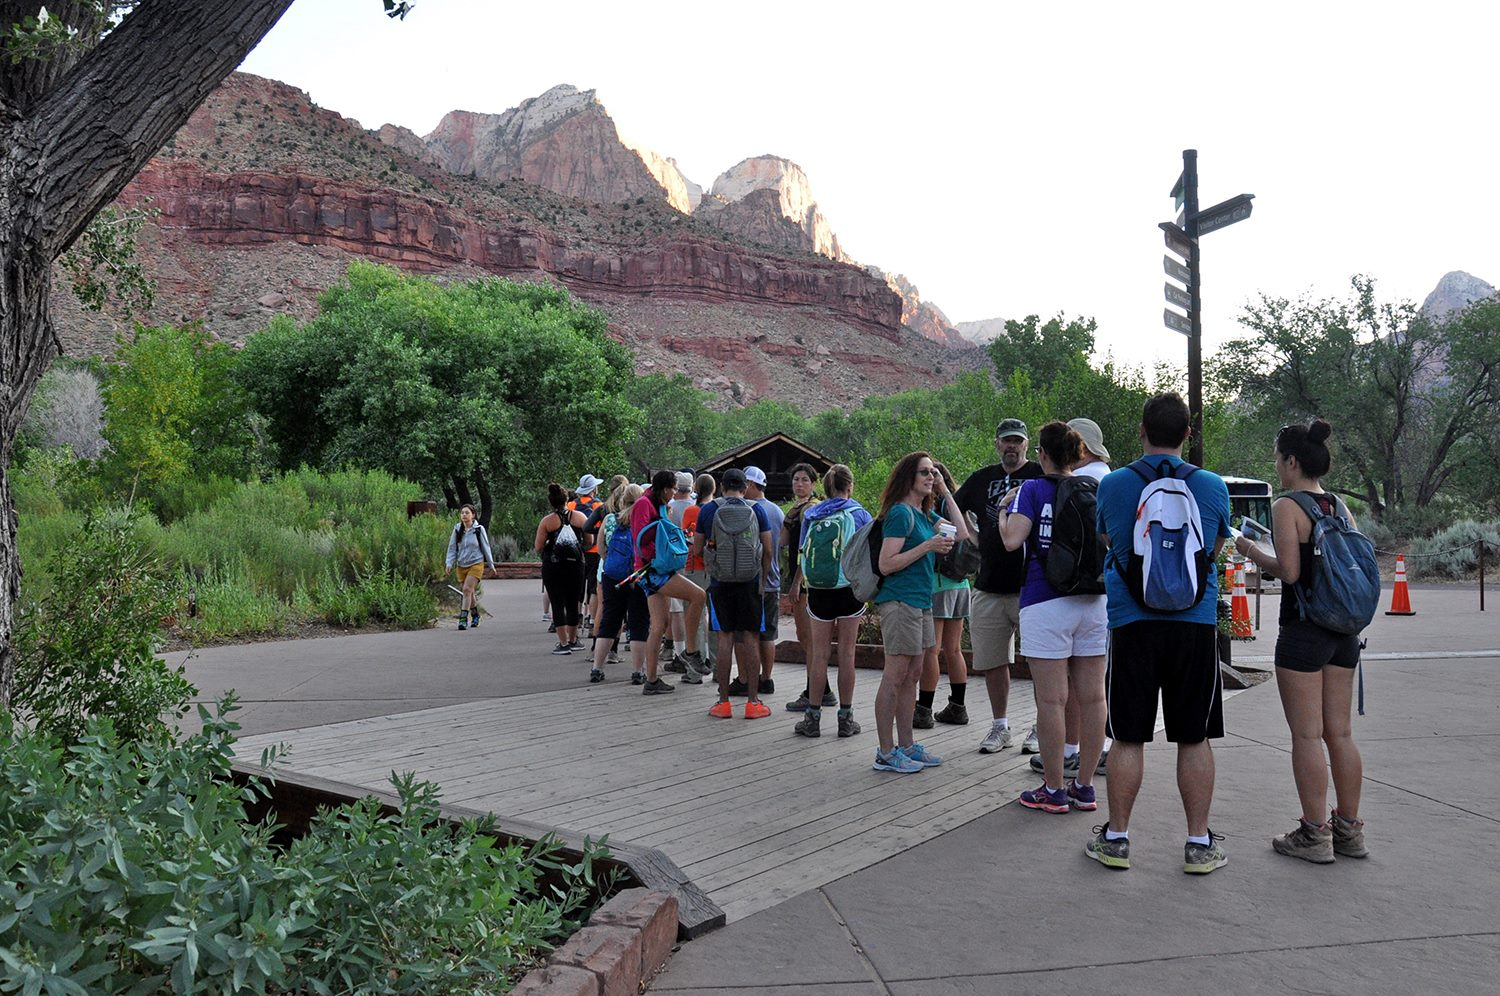 Crowds at Zion National Park